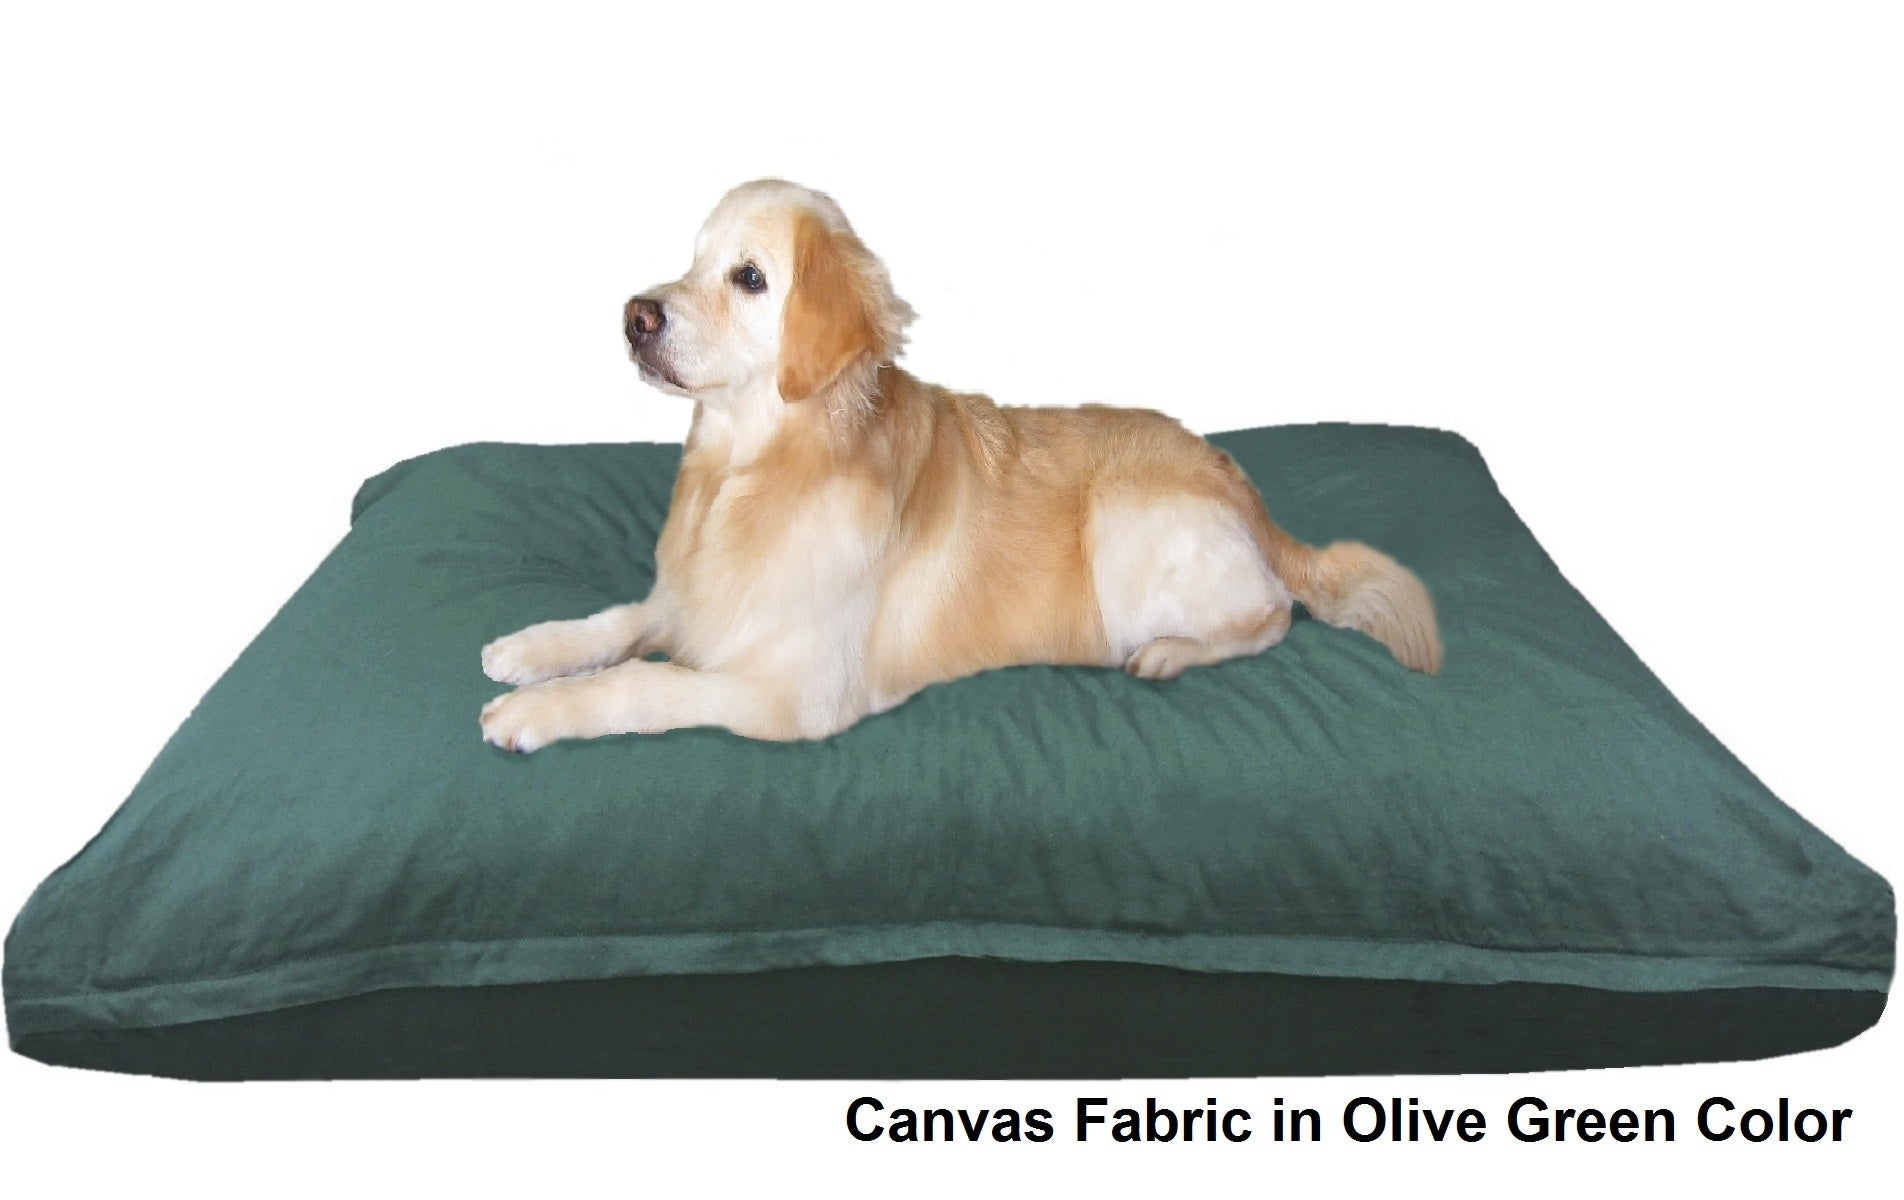 Details about JUMBO Extra Large Mix Memory Foam Pet Dog Bed Pillow Canvas Waterproof Cover XL